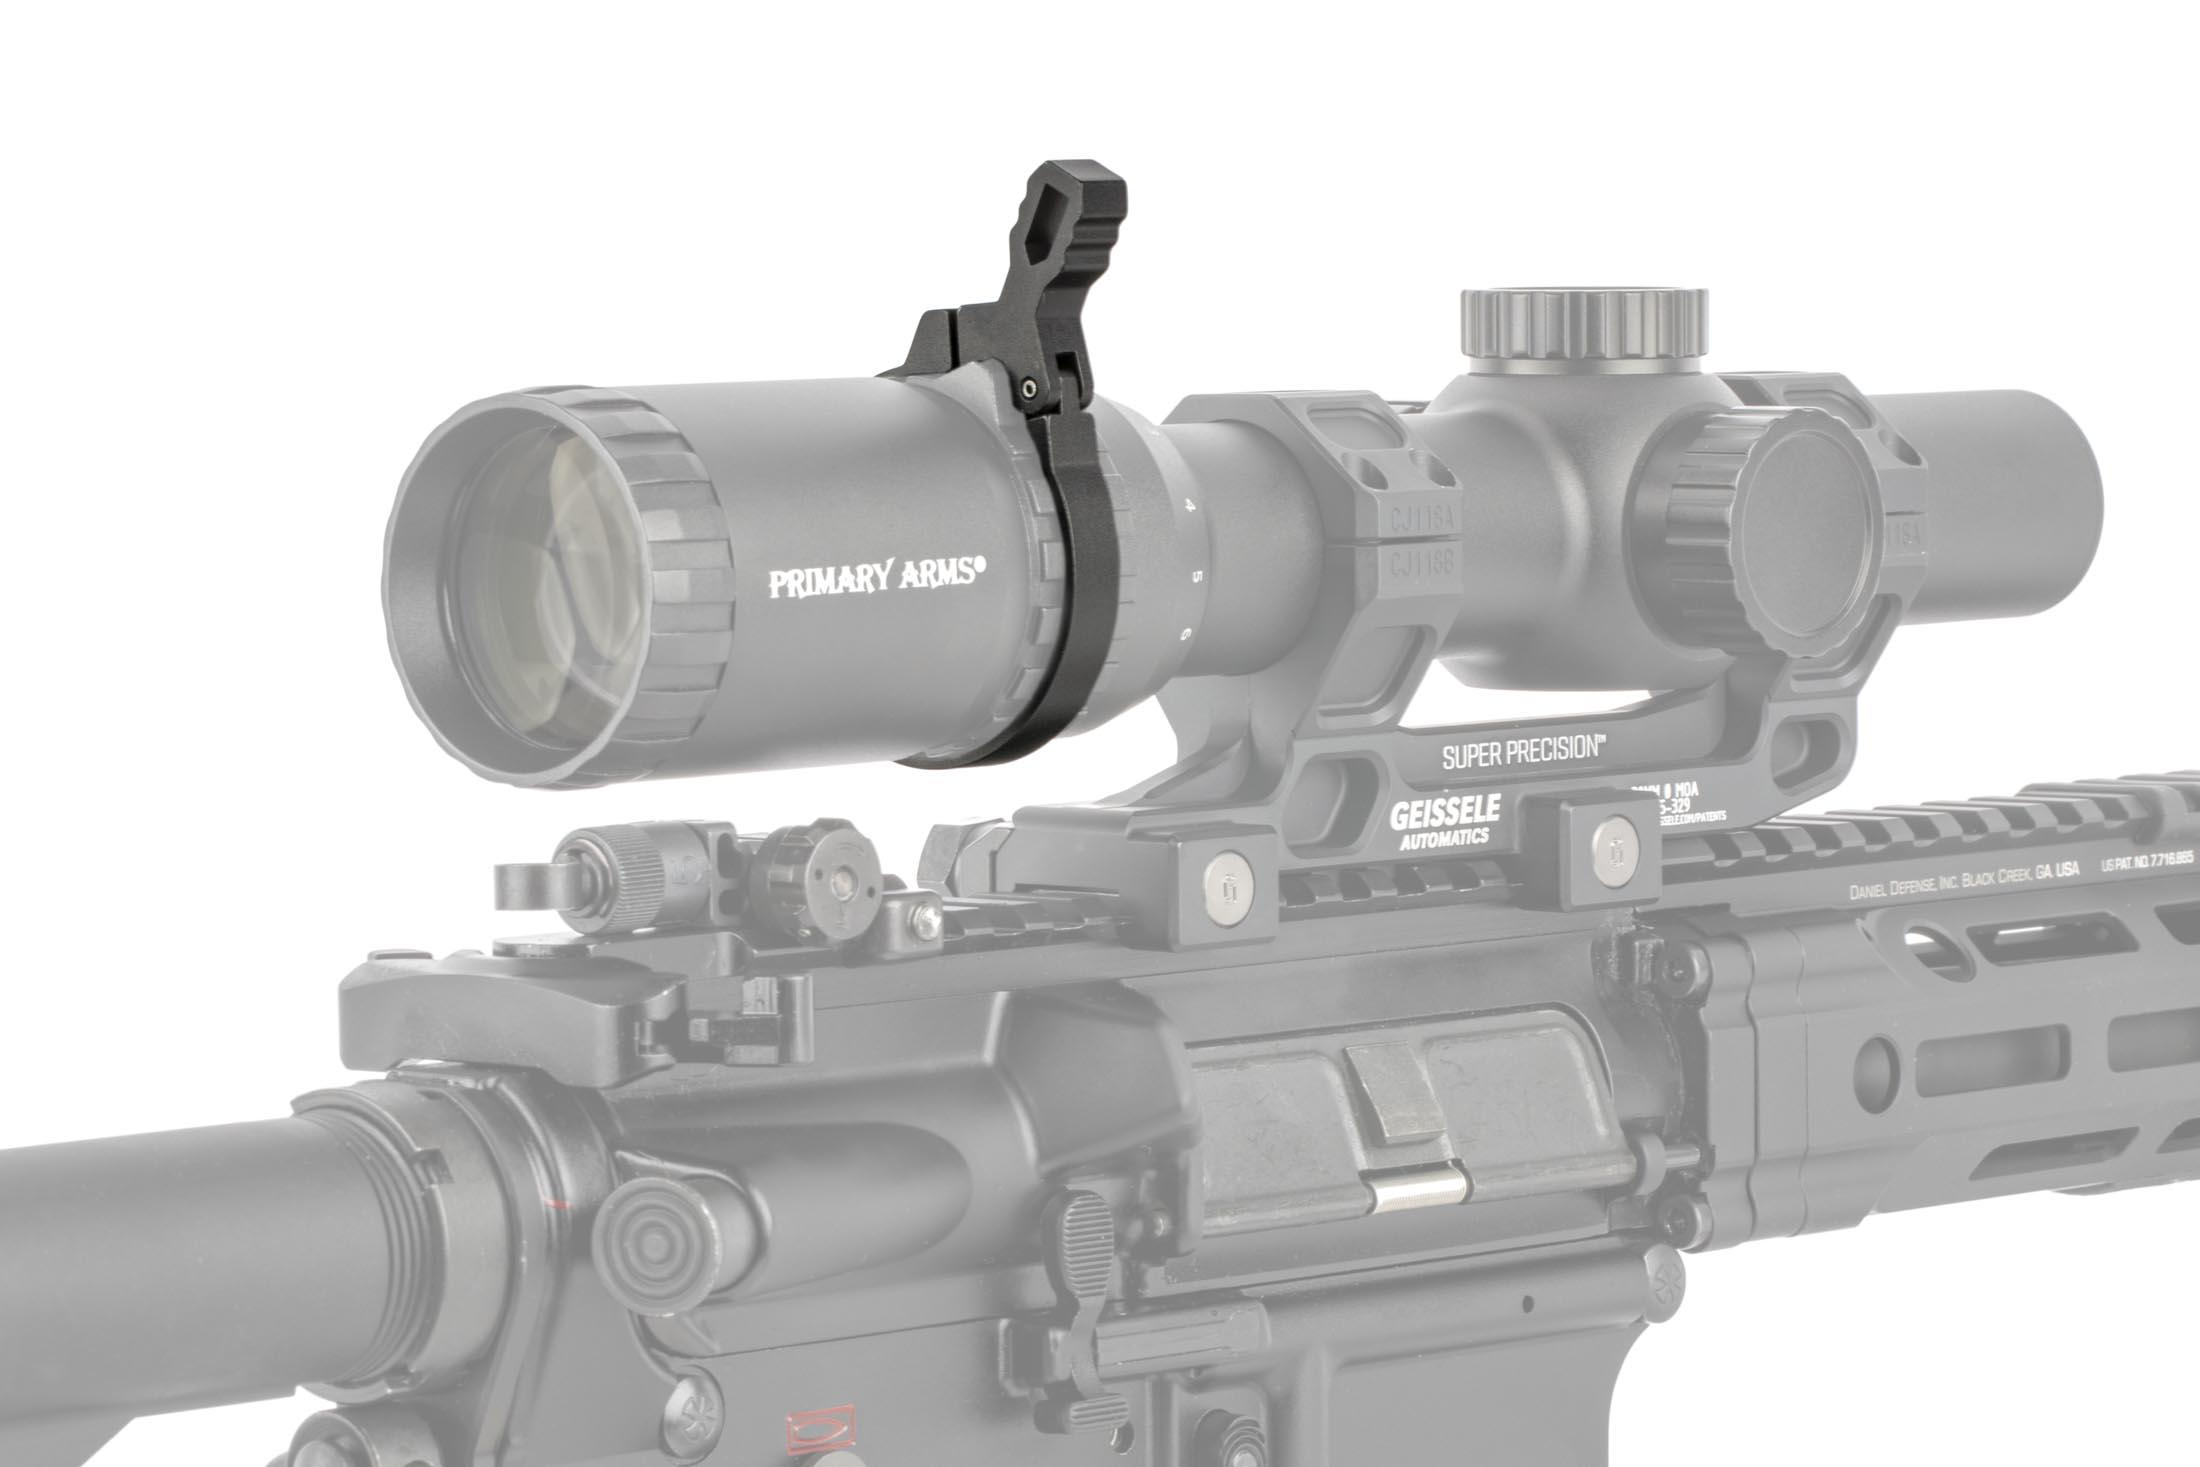 Primary arms easy to install magnification lever fits most of our SLx6 and SLx8 low power variable rifle scopes